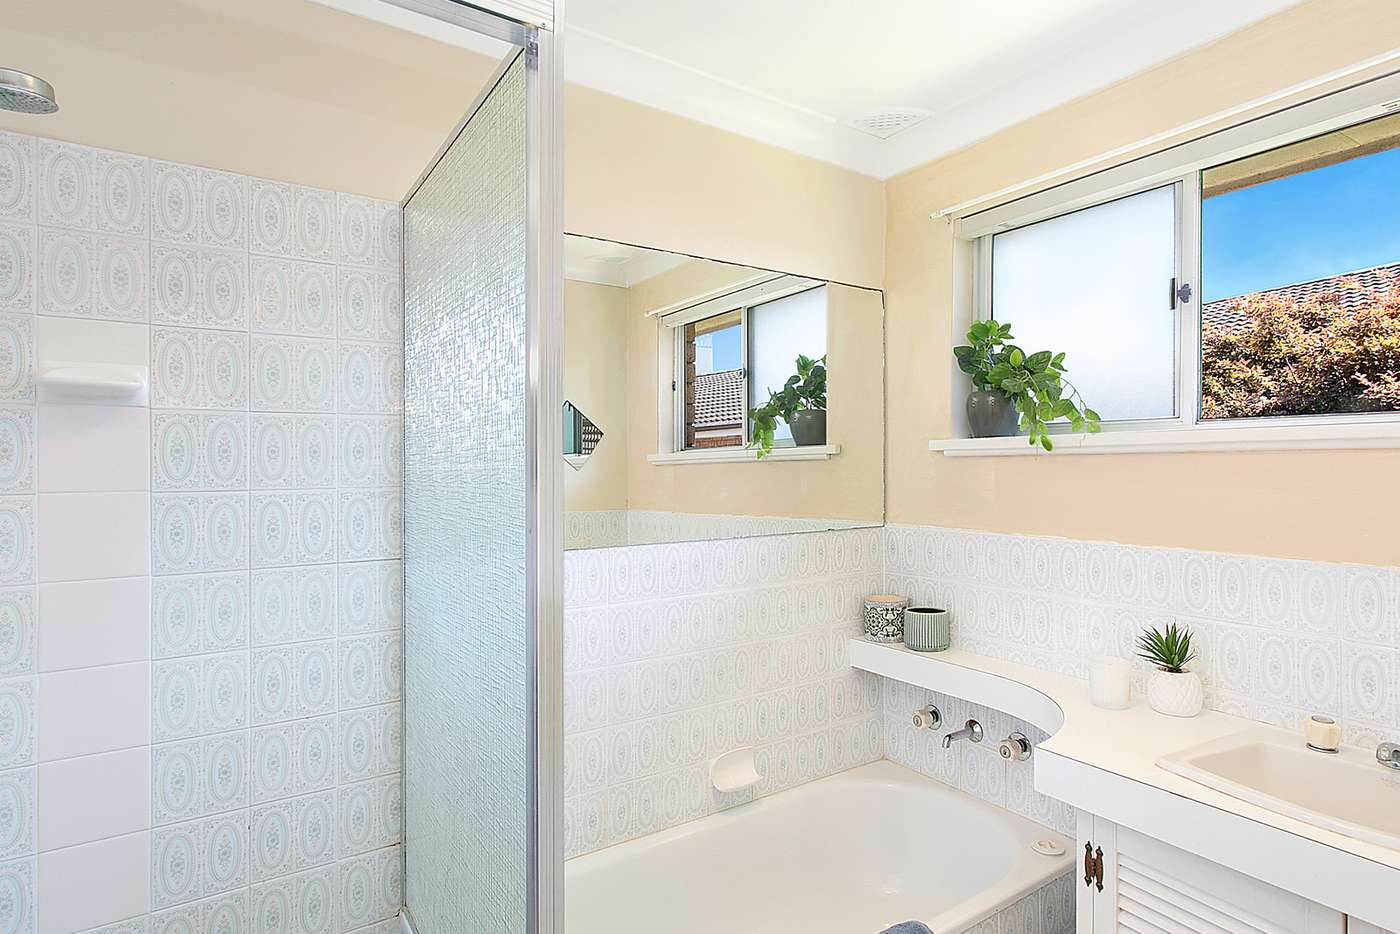 Sixth view of Homely villa listing, 3/38 Oakland Avenue, The Entrance NSW 2261